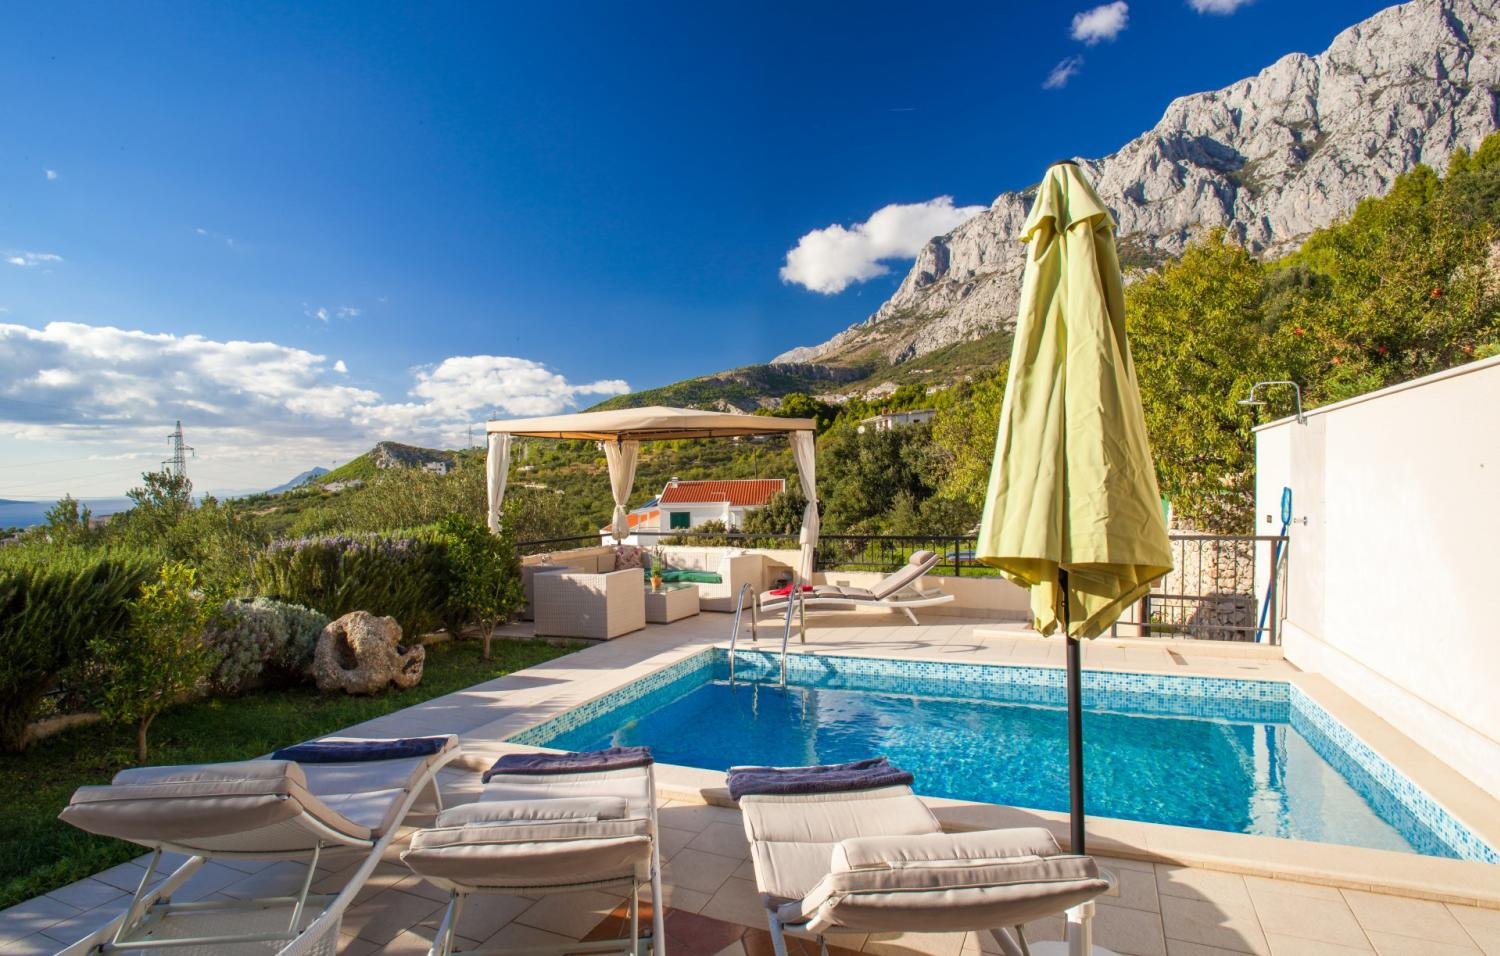 croatia, dalmatian coast, split riviera, makarska, villa mir, pool with mountain view